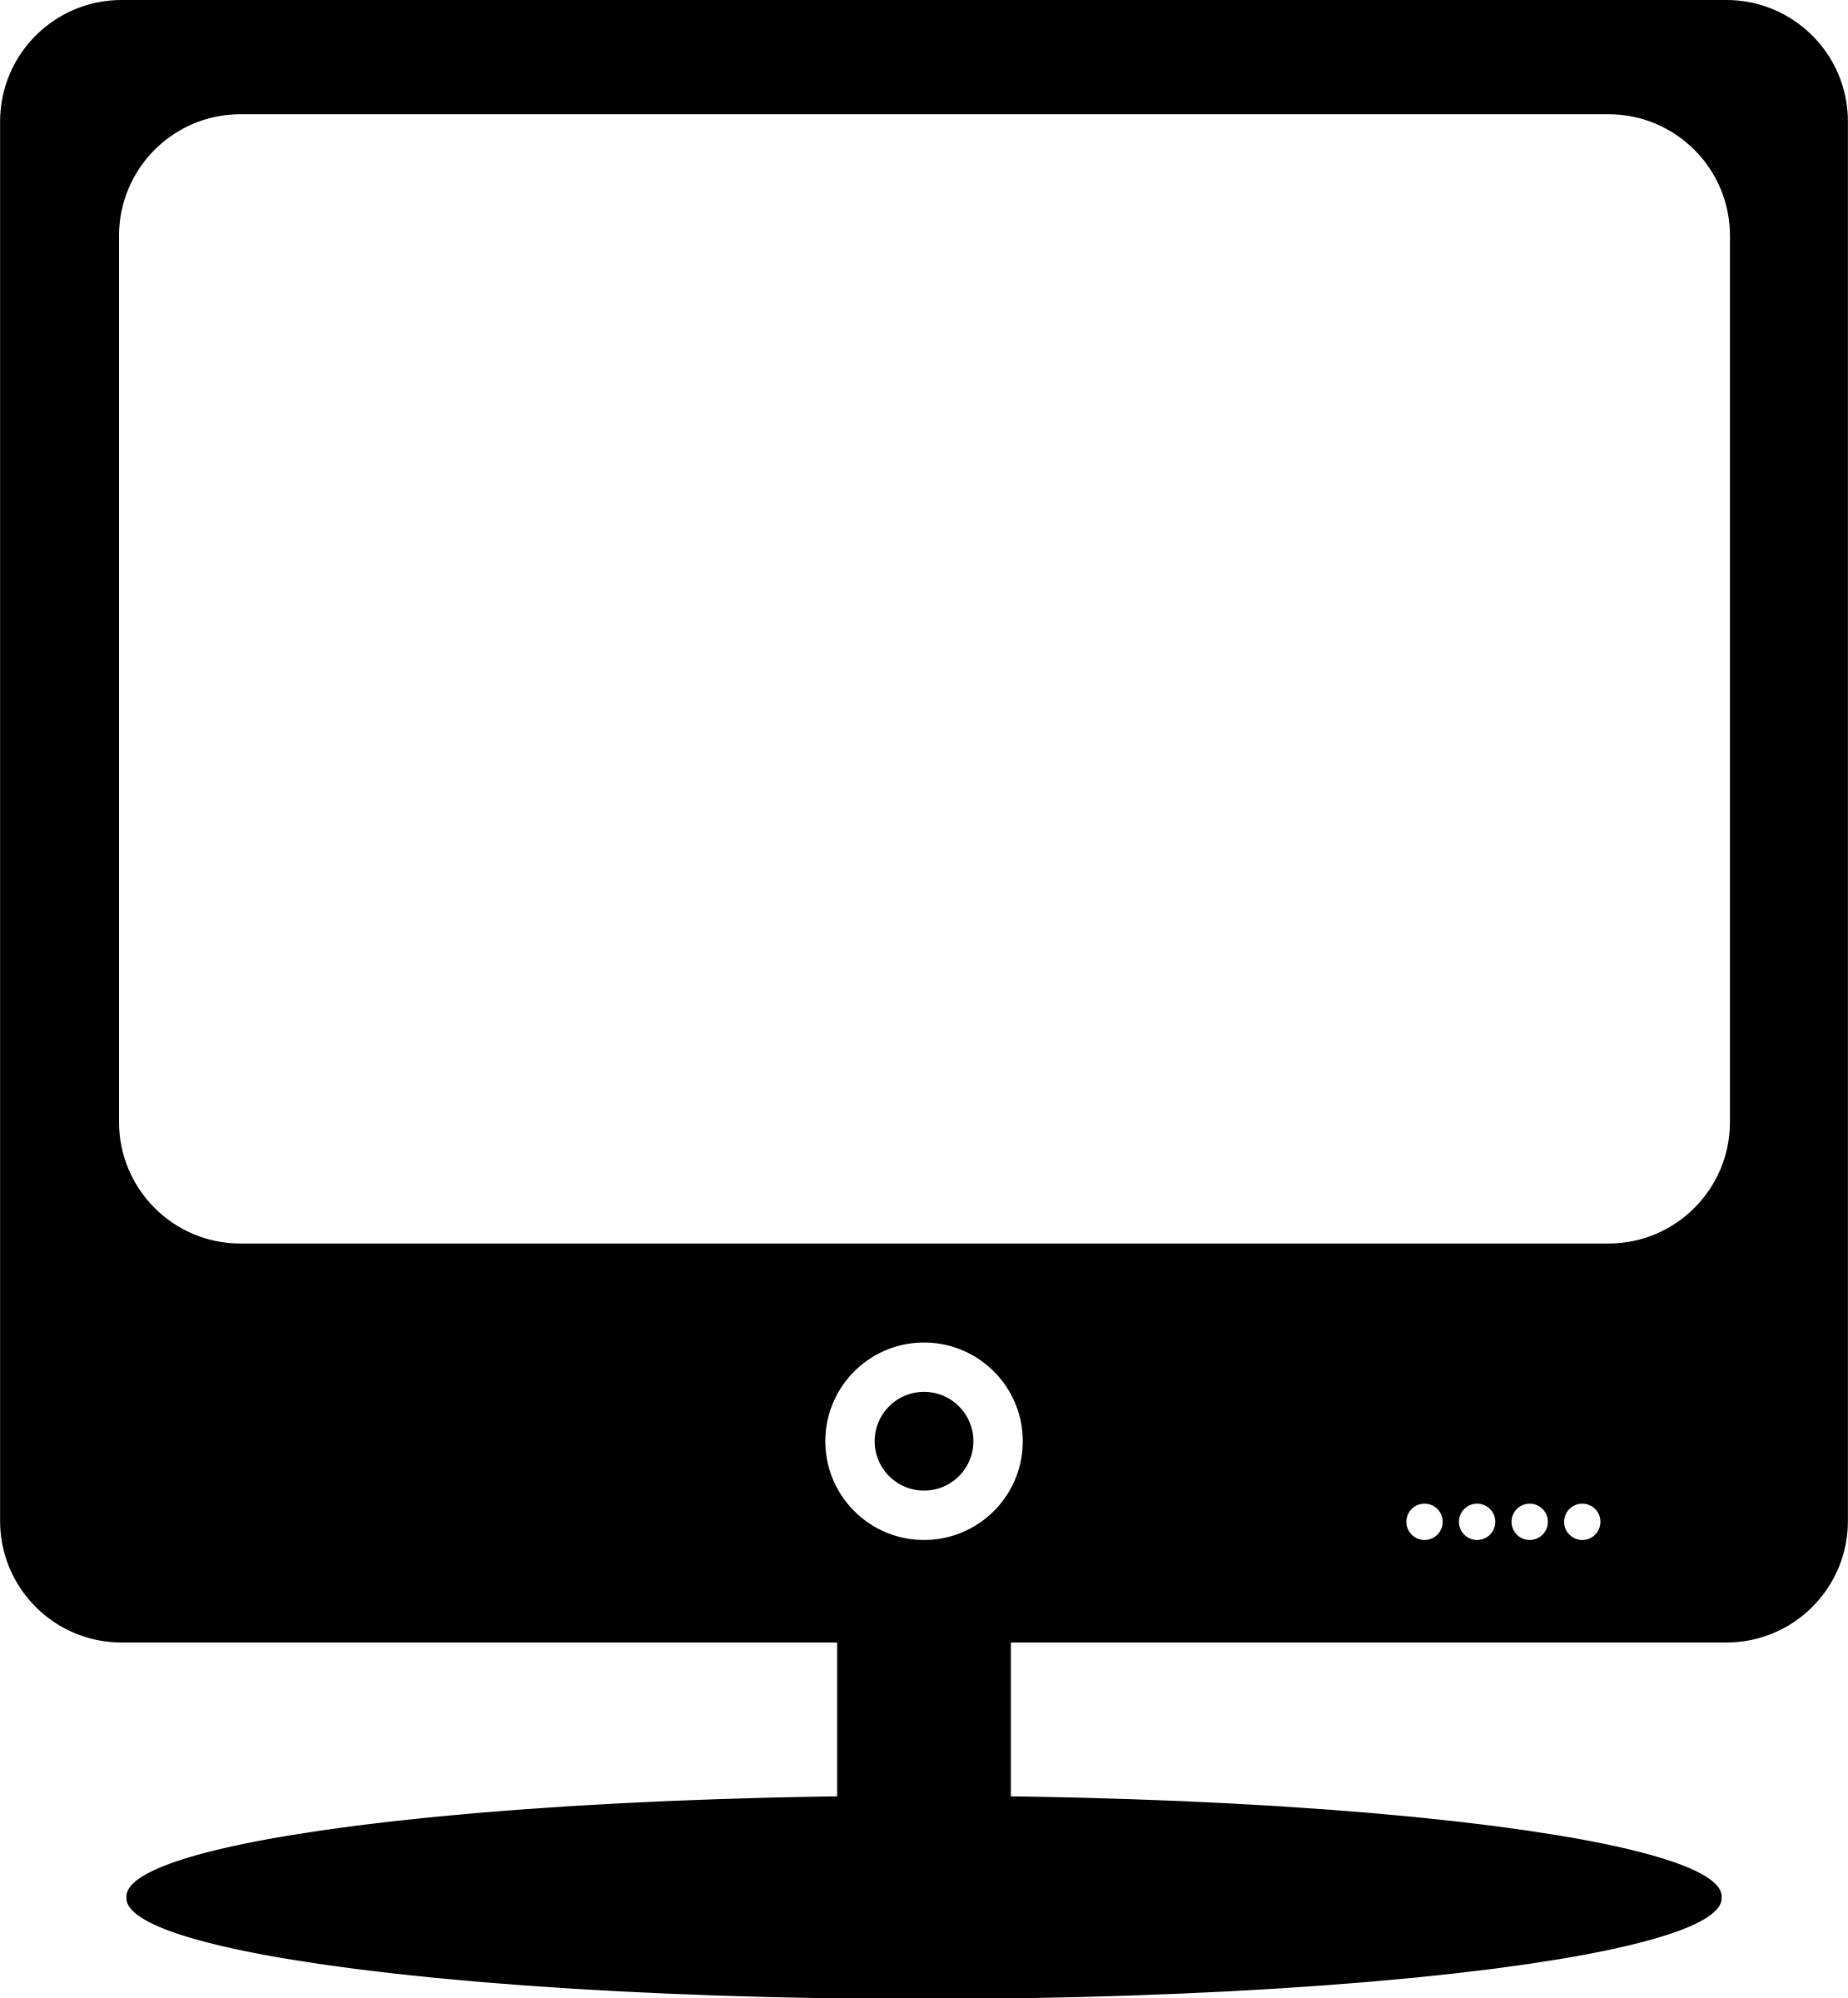 Clipart of computer monitor.